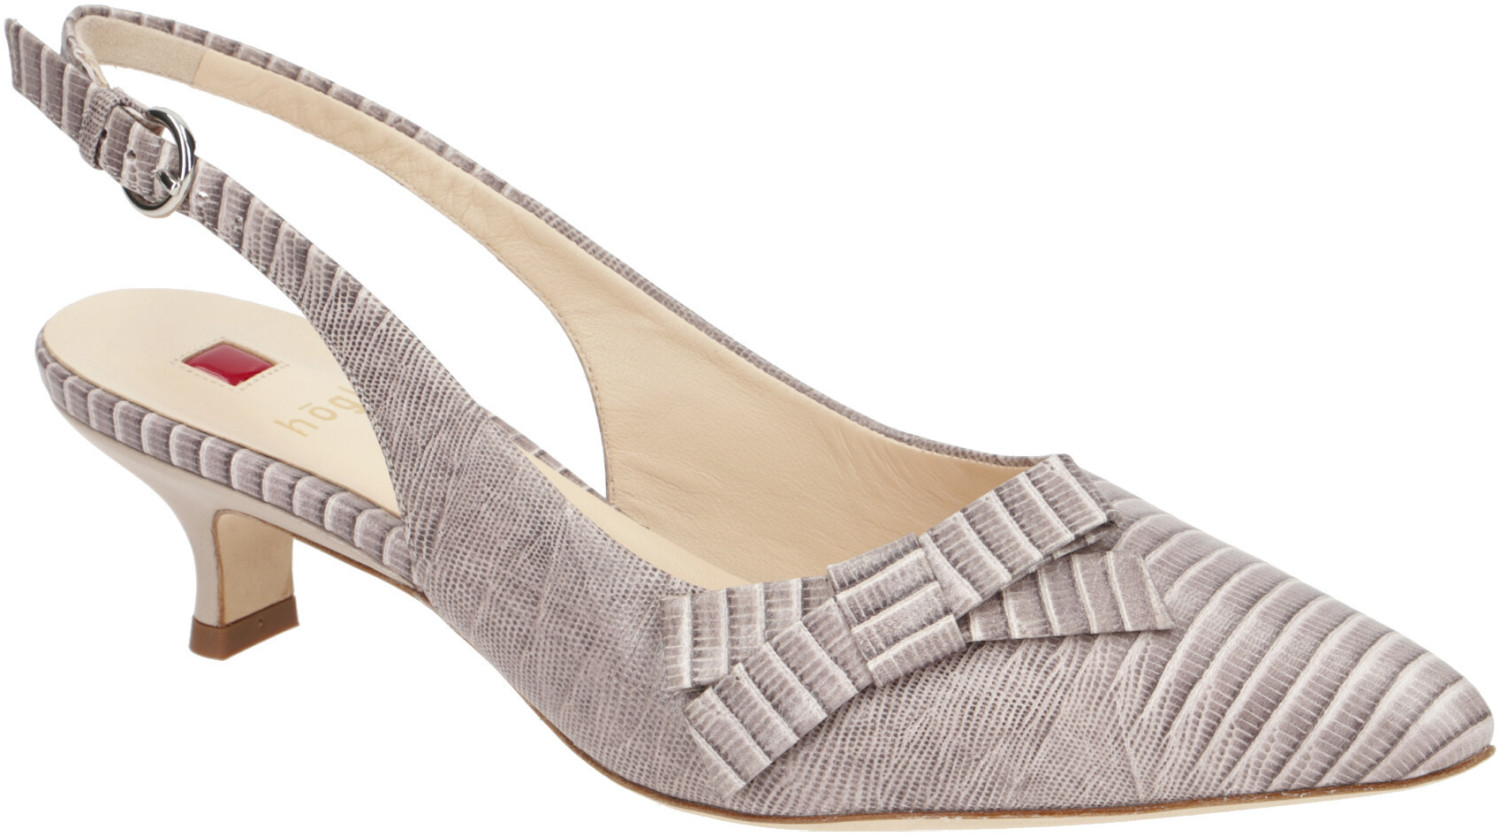 Högl Slingpumps City grau (7-10 4726 6800)